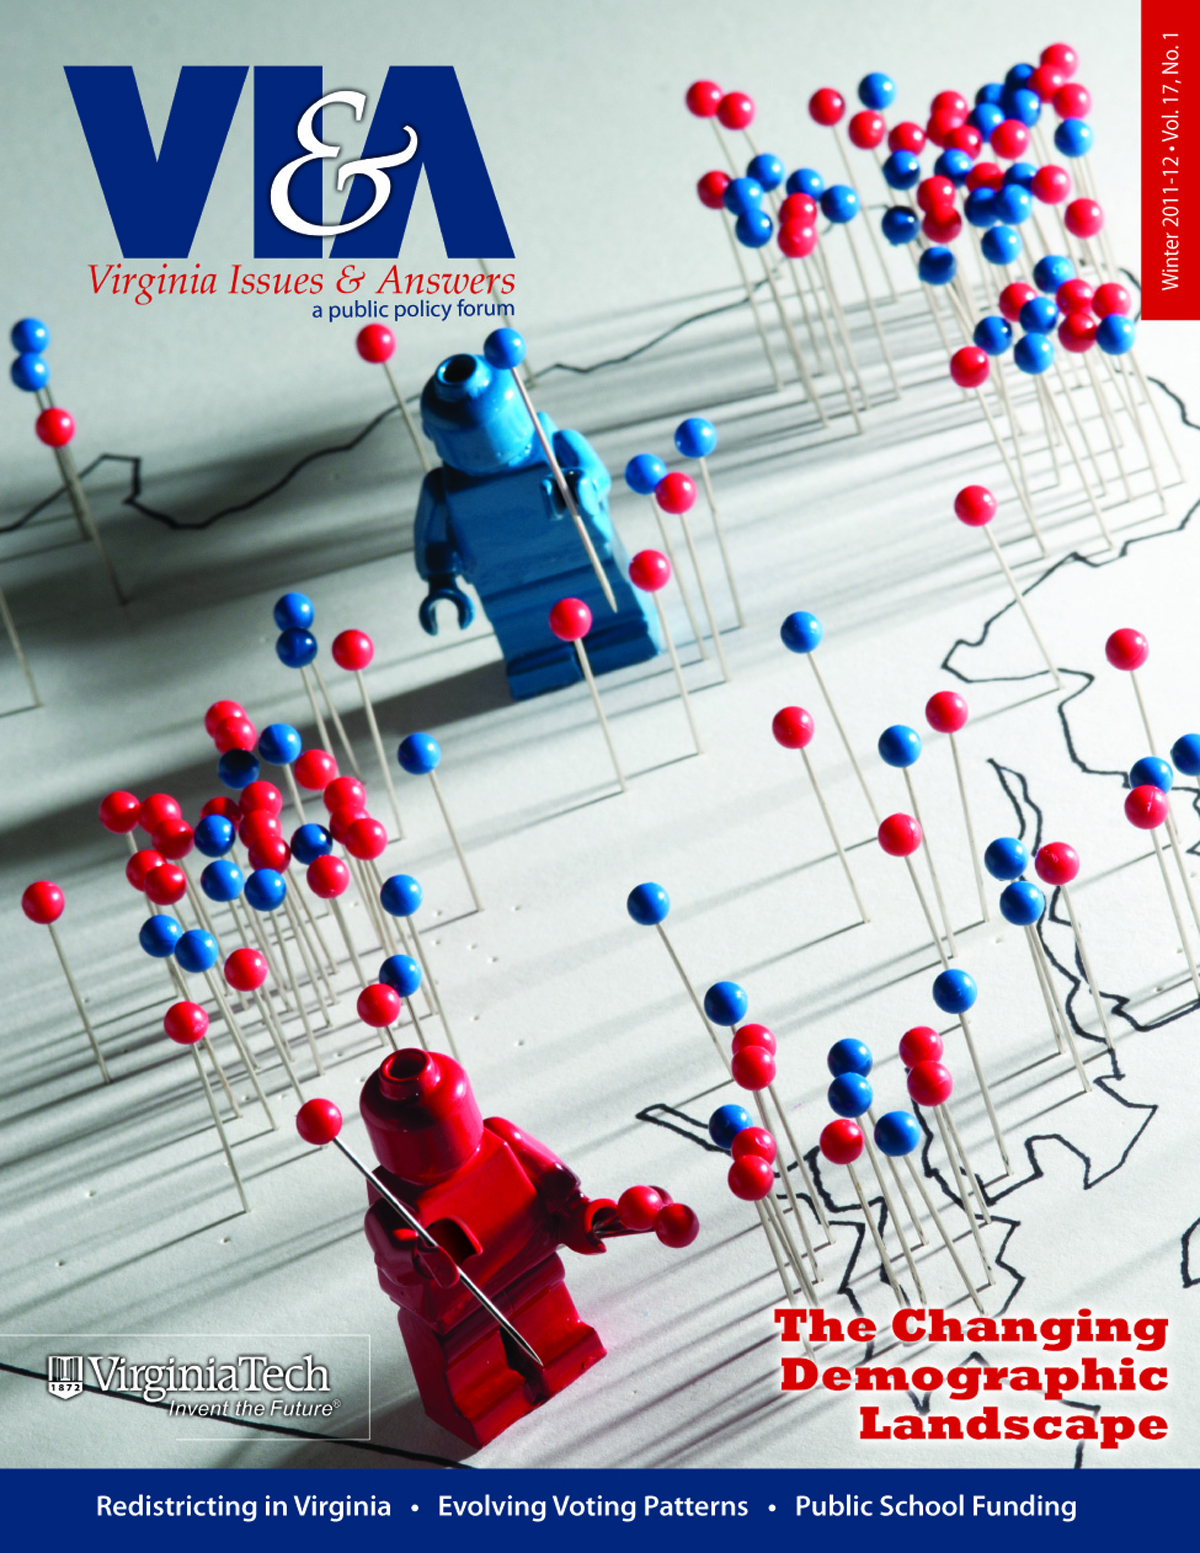 Winter 2011-12 edition of Virginia Issues & Answers